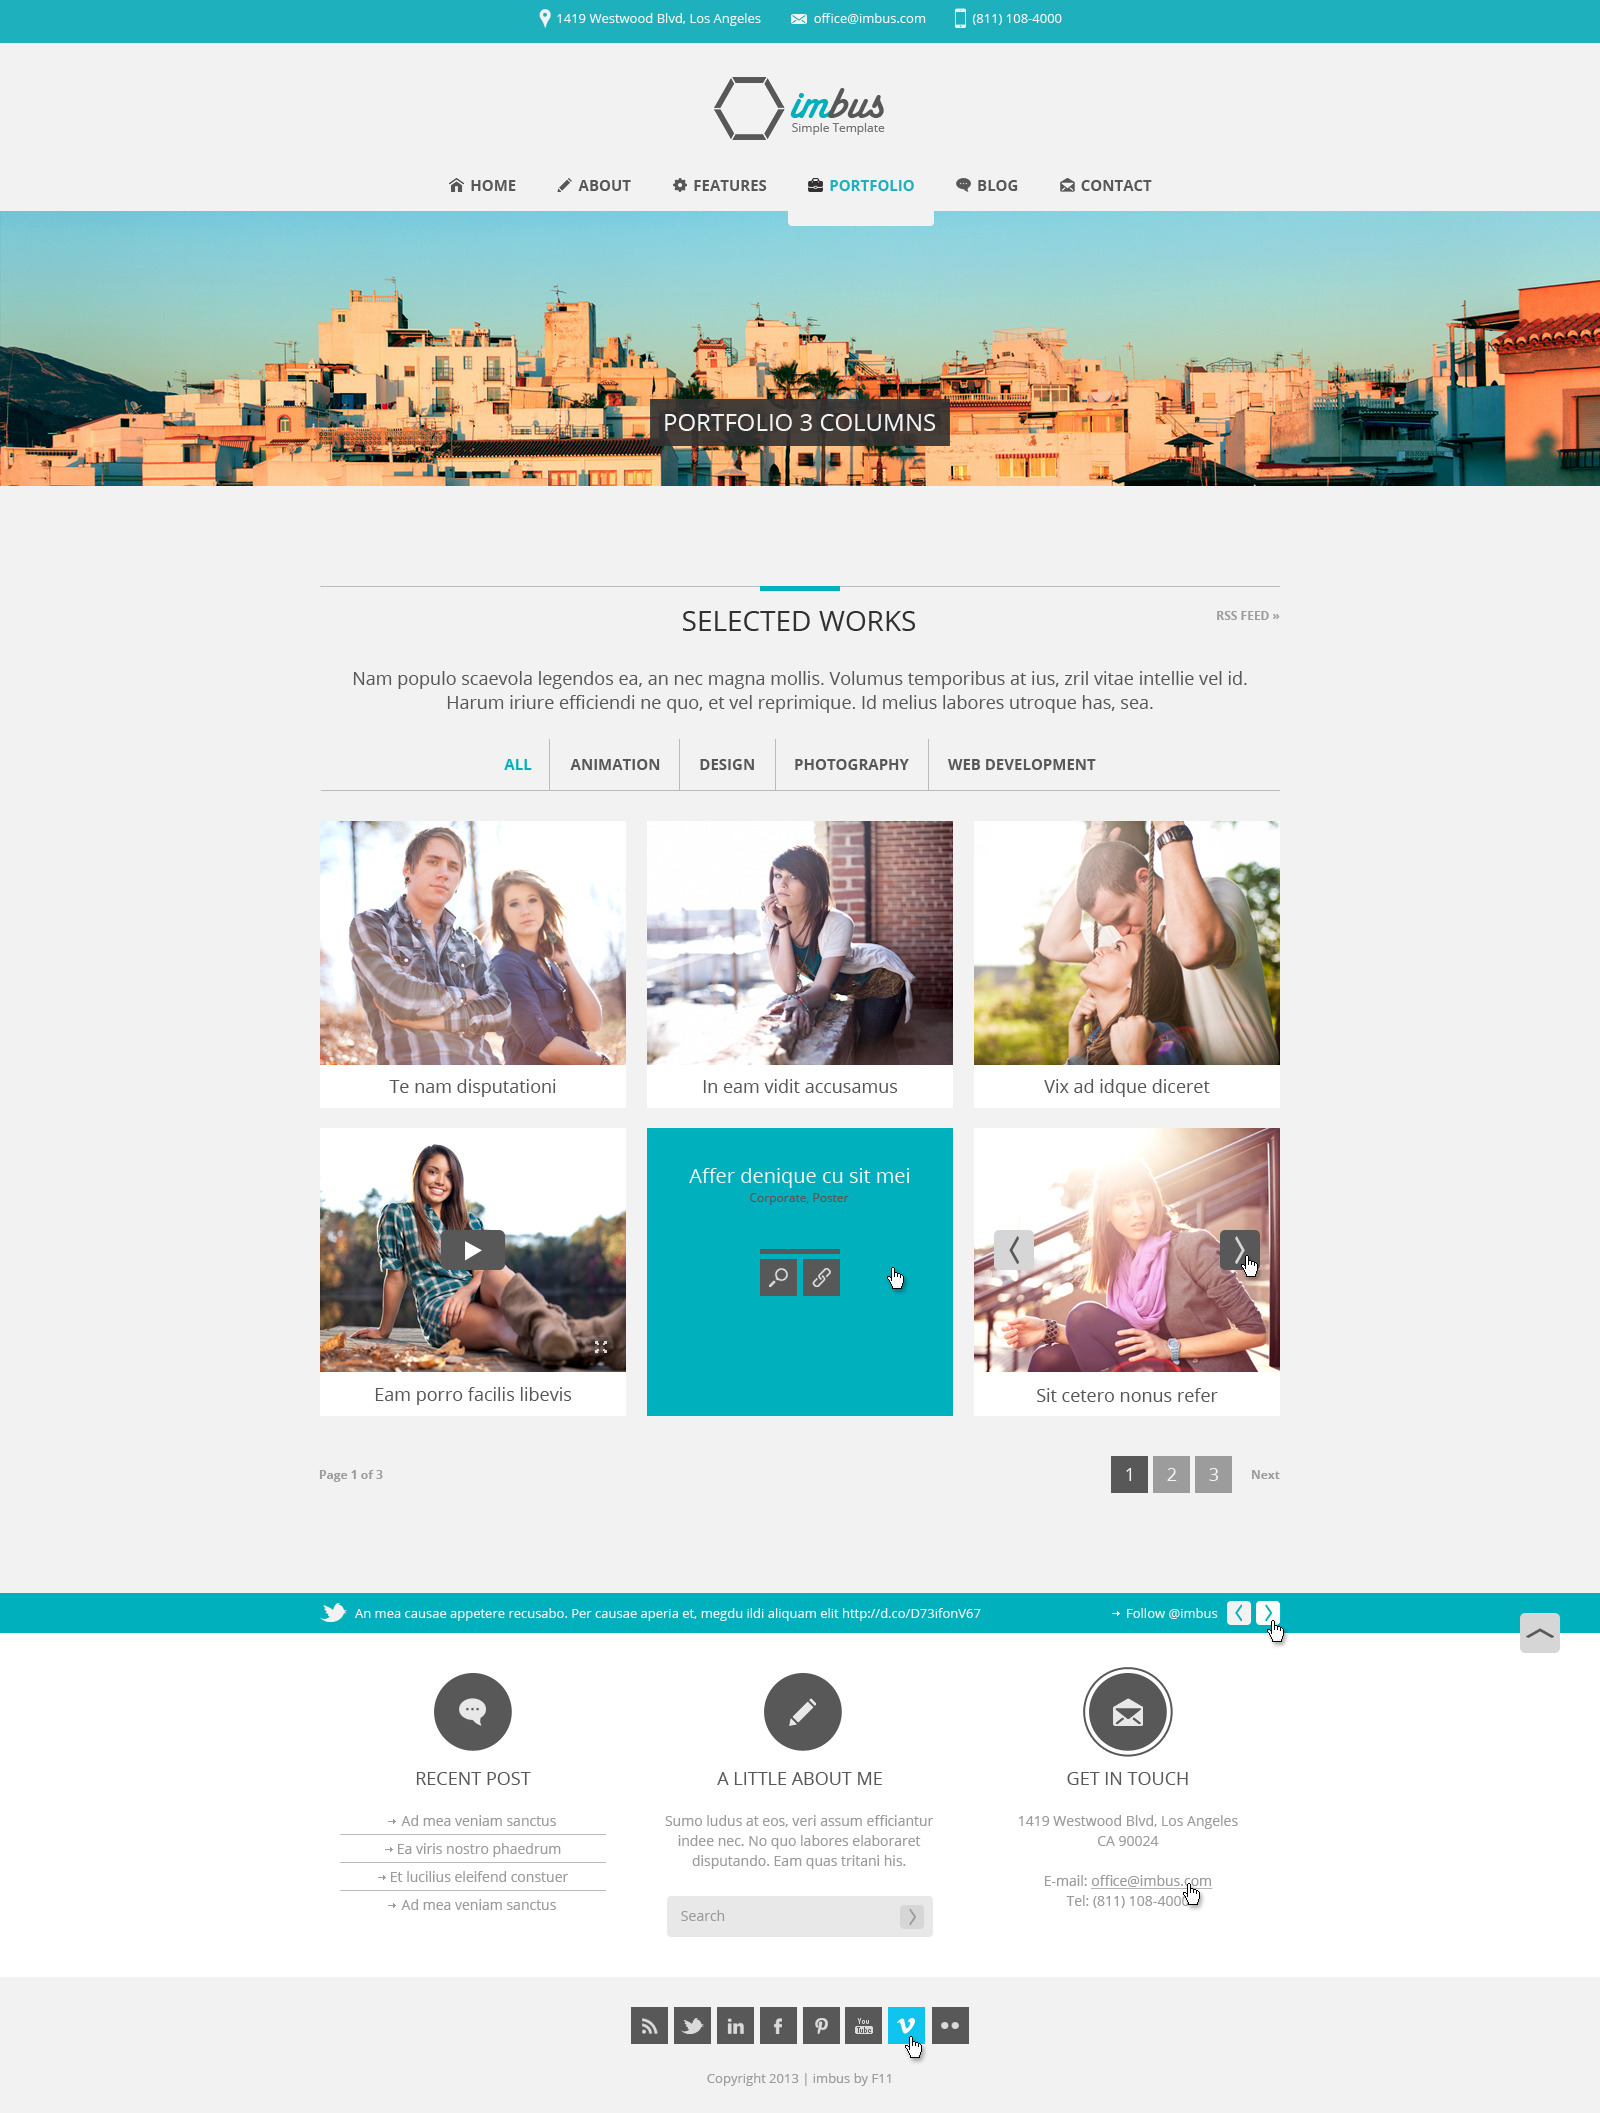 imbus - Simple PSD Template - imbus - Simple PSD Template.  Portfolio with 3 columns.